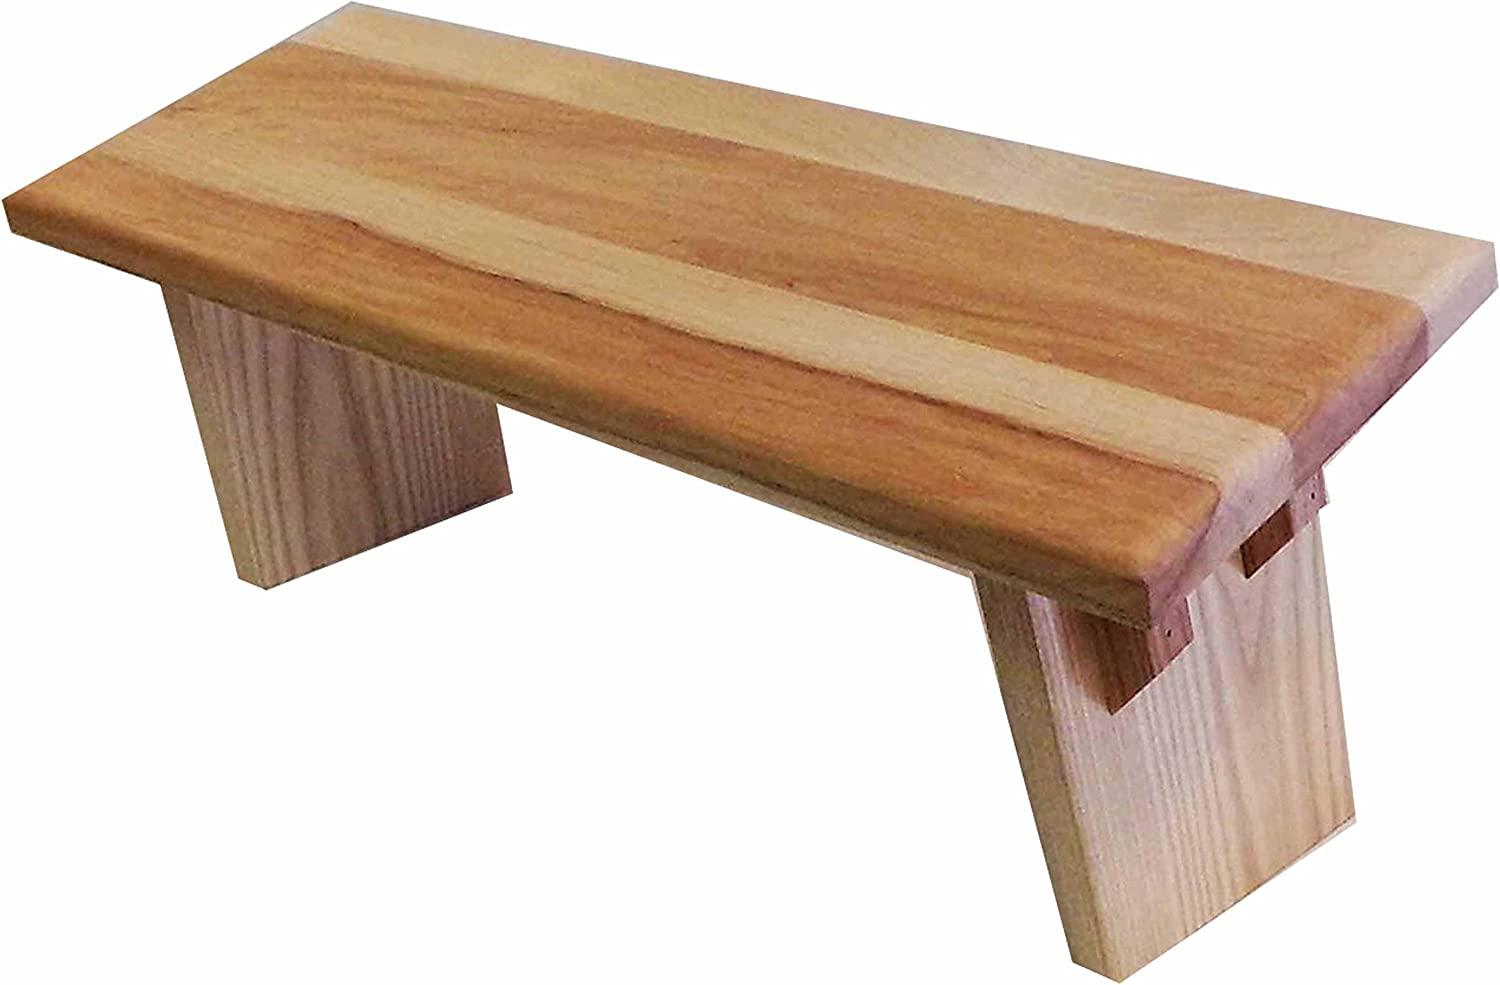 EarthBench Maple Hardwood Meditation Bench by